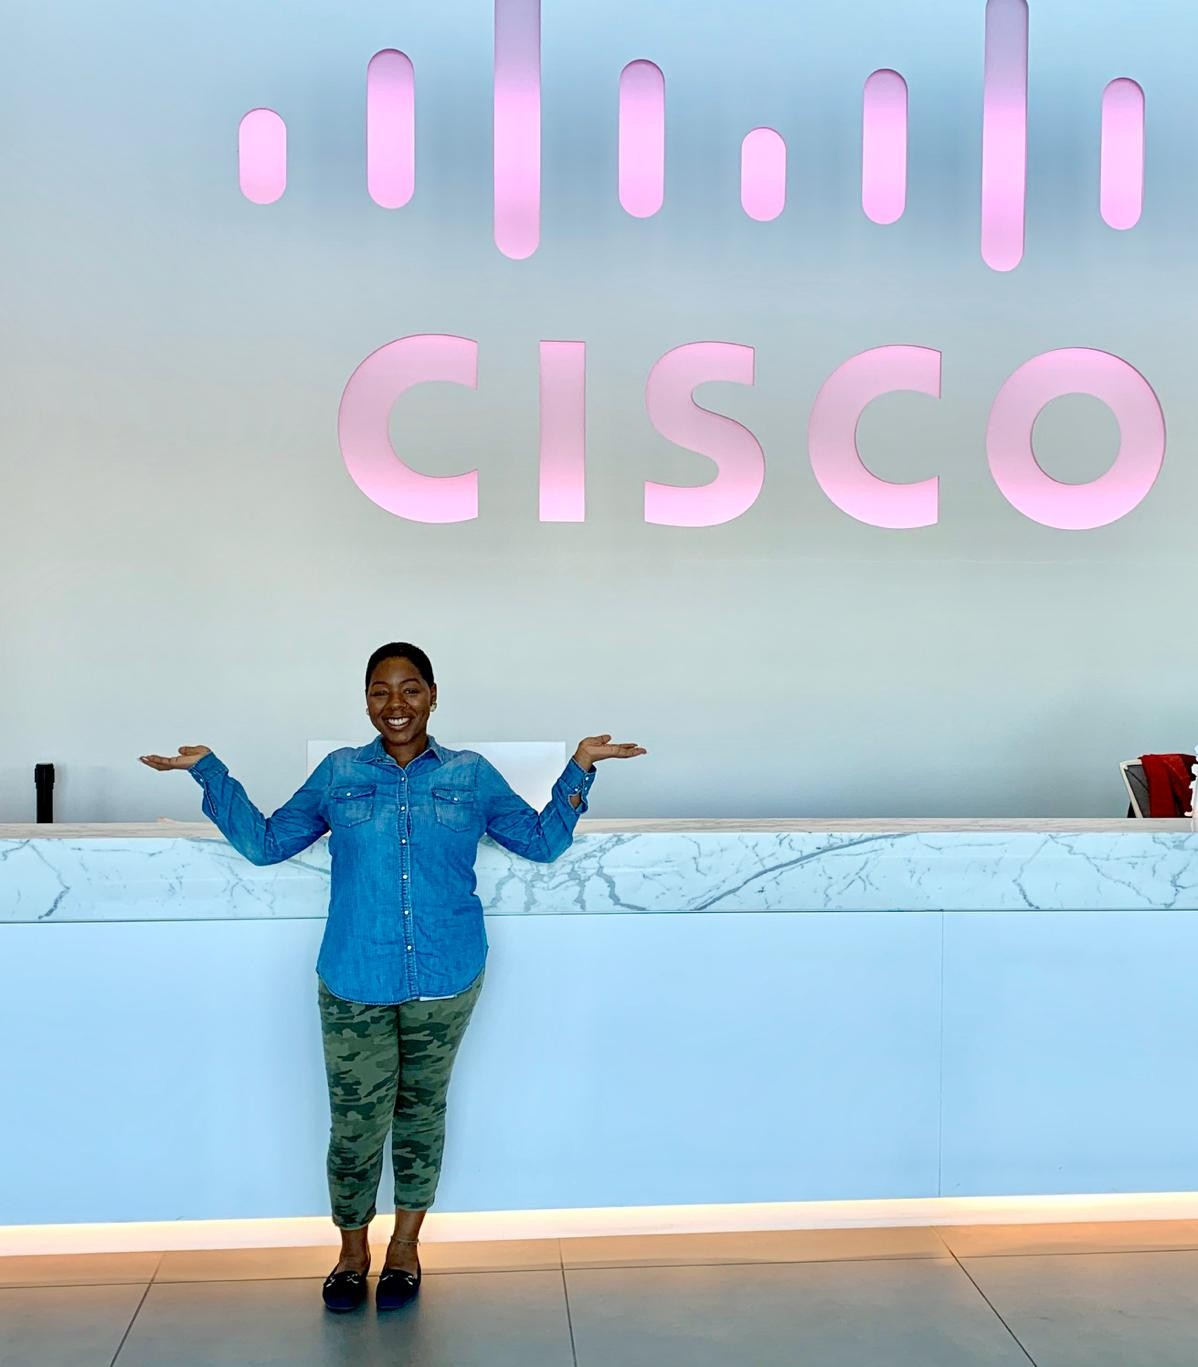 Amber stands in front of a bright pink light up Cisco sign in a lobby of a building.